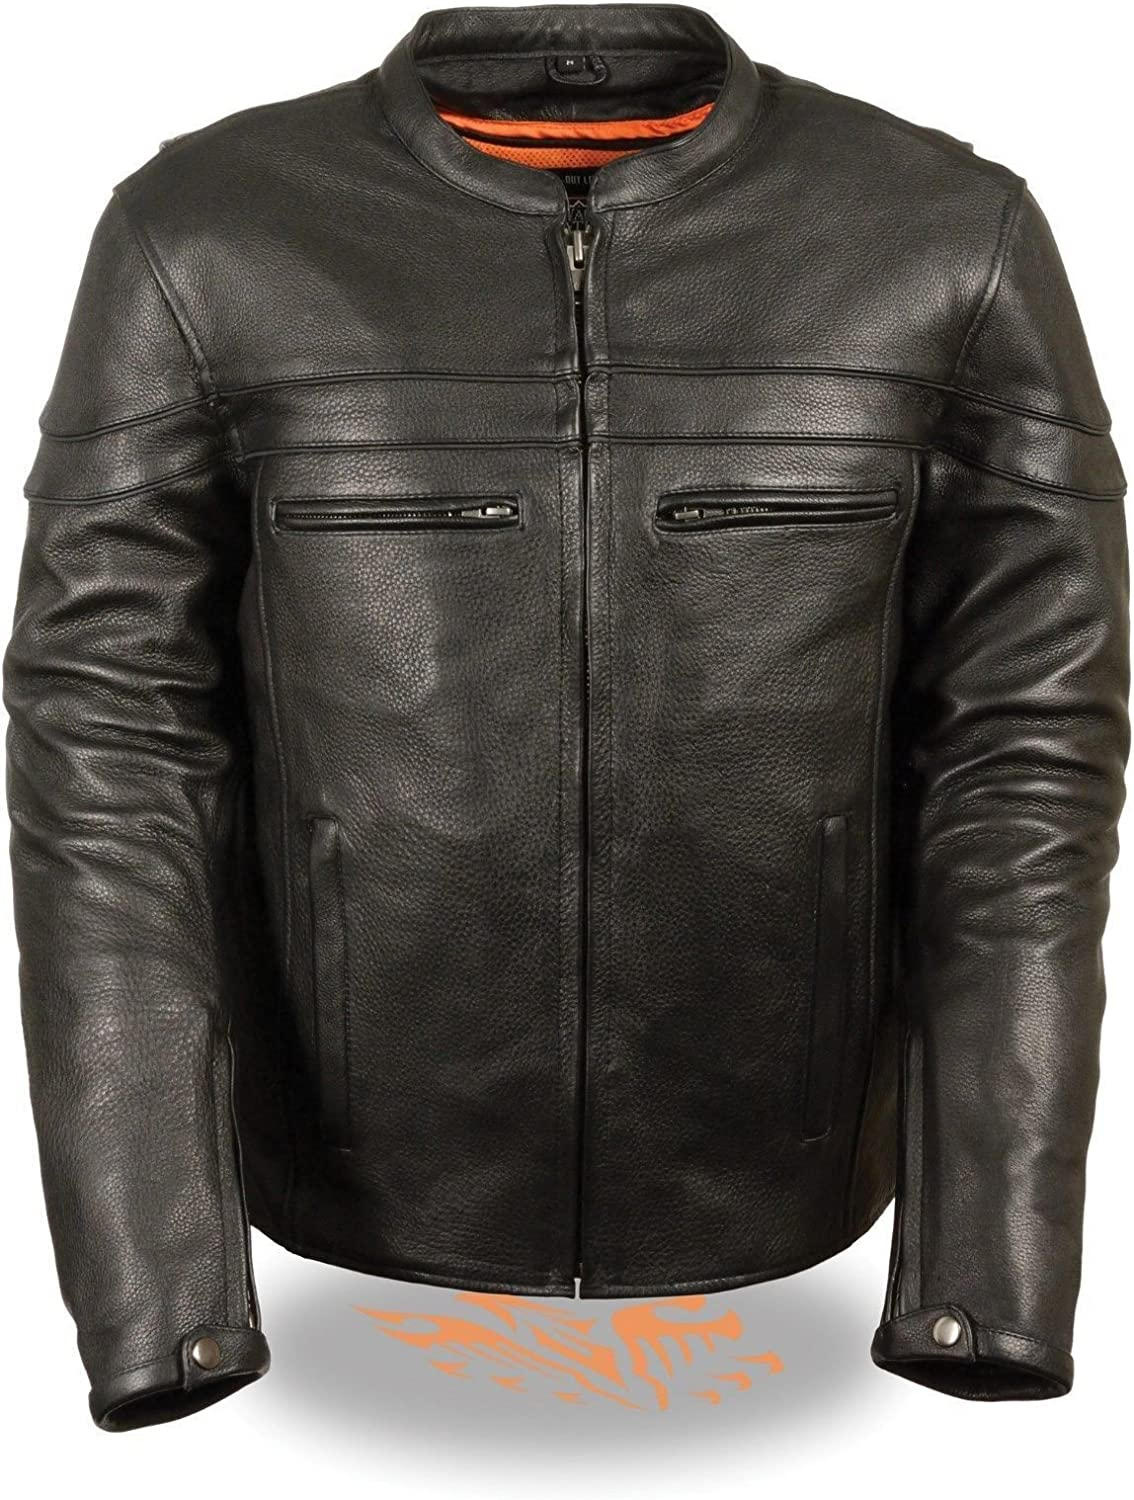 MEN'S MOTORCYCLE REFLECTIVE SCOOTER NAKED COW LEATHER JACKET W/GUN POCKET VENTS (3XL Regular)